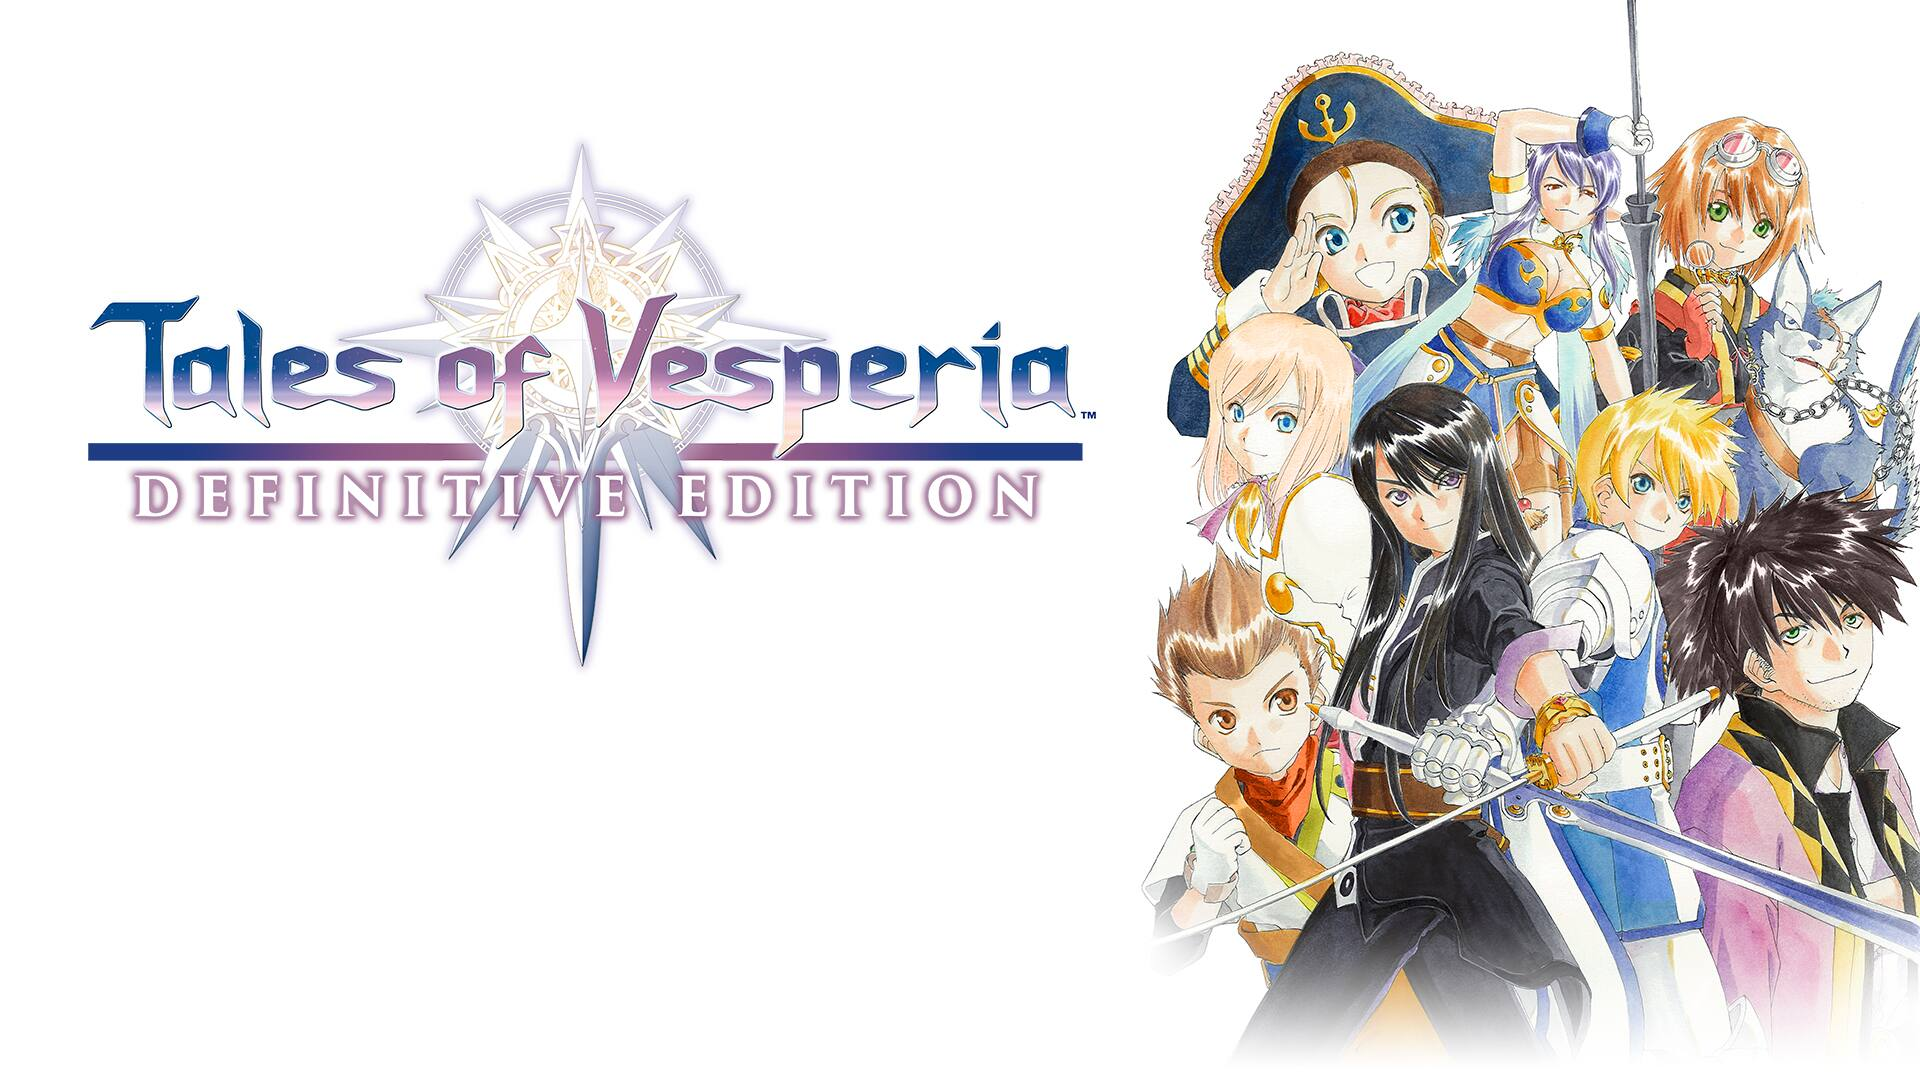 Tales of Vesperia: Definitive Edition (Nintendo Switch Digital Download) $14.99 (70% off)